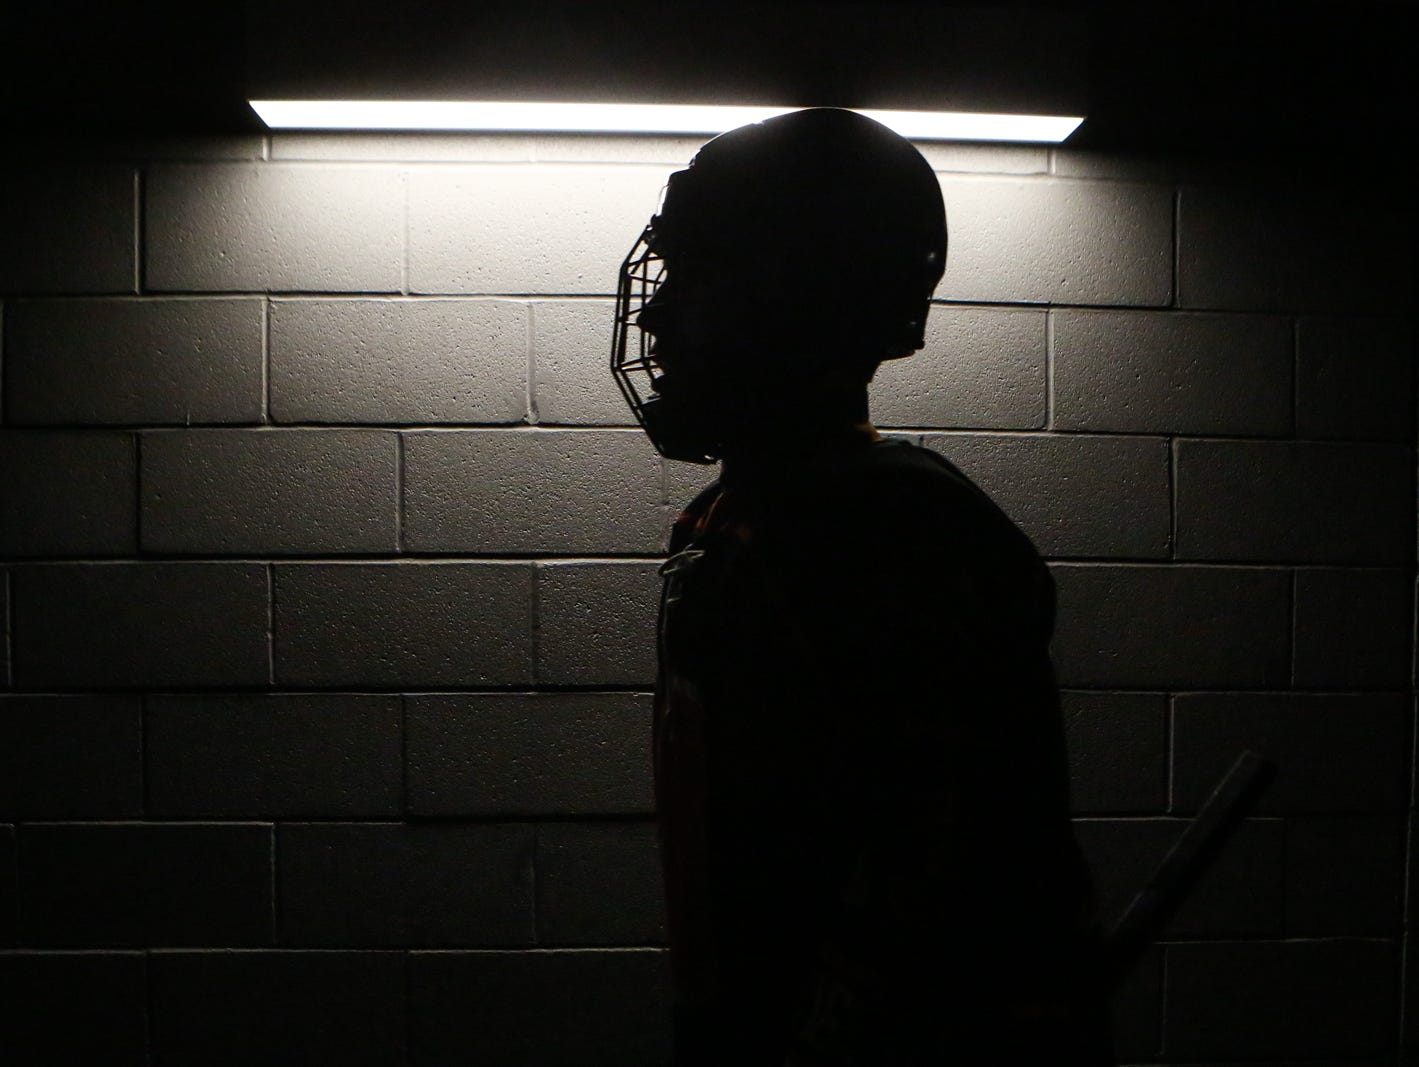 A silhouette photograph of Mamaroneck player heading to the ice rink. Mamaroneck defeated West Genesee 1-0 and won the NYSPHSAA Division 1 HarborCenter in Buffalo, NY.